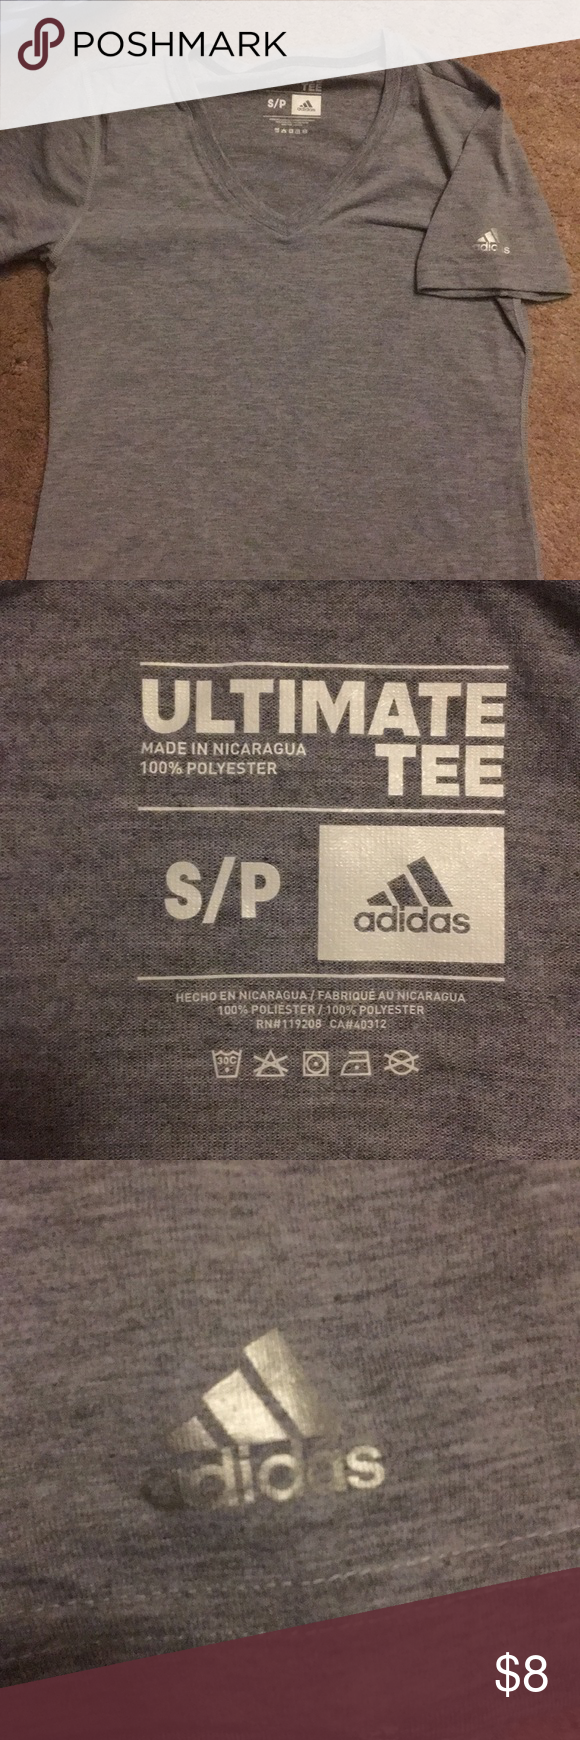 Womens Adidas Tee New Without Tags Never Worn Or Washed